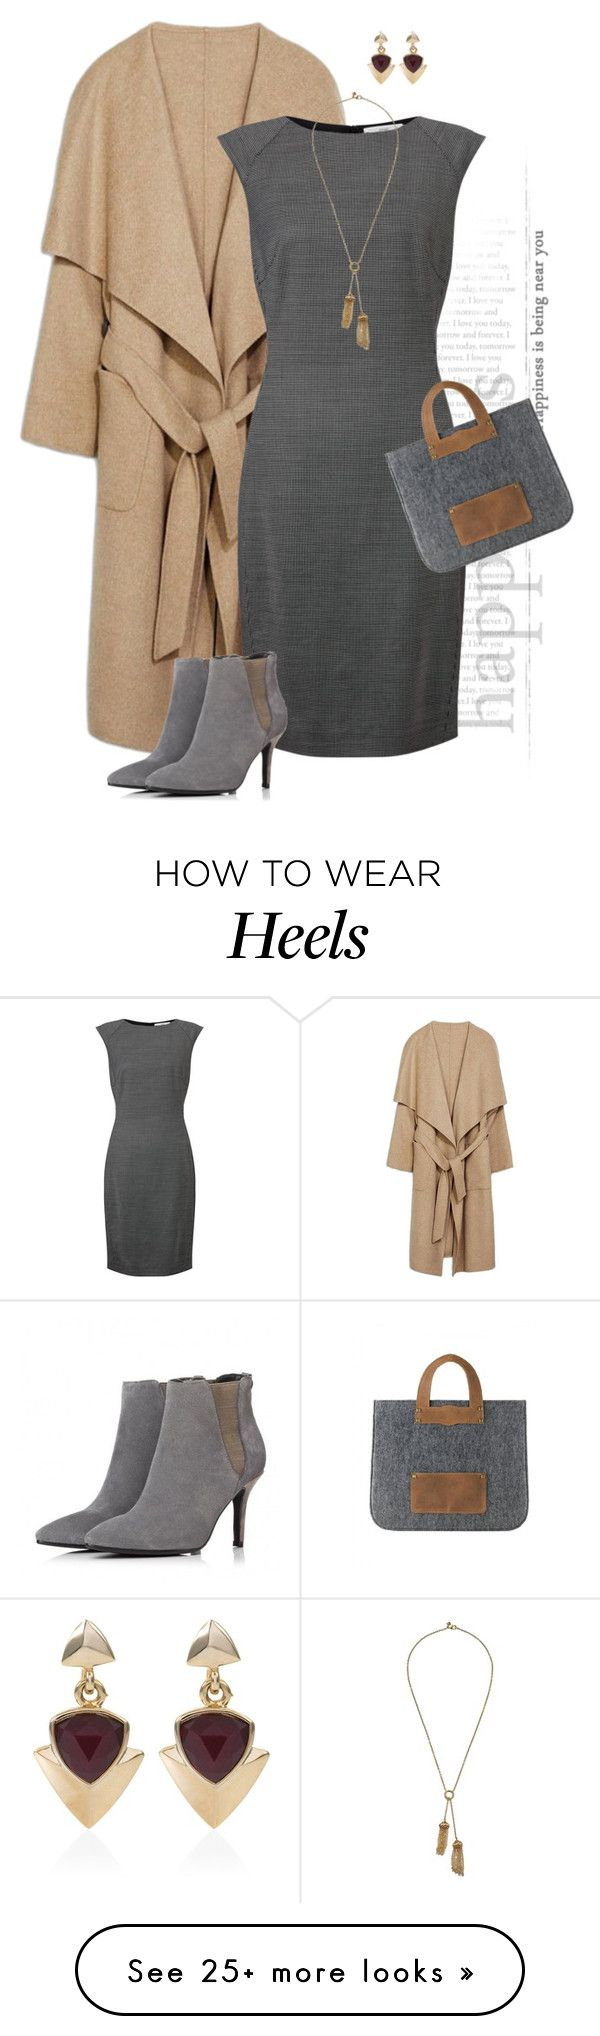 """Street style"" by janemichaud-ipod on Polyvore featuring moda, John Lewis, Rebecca Minkoff i White House Black Market"